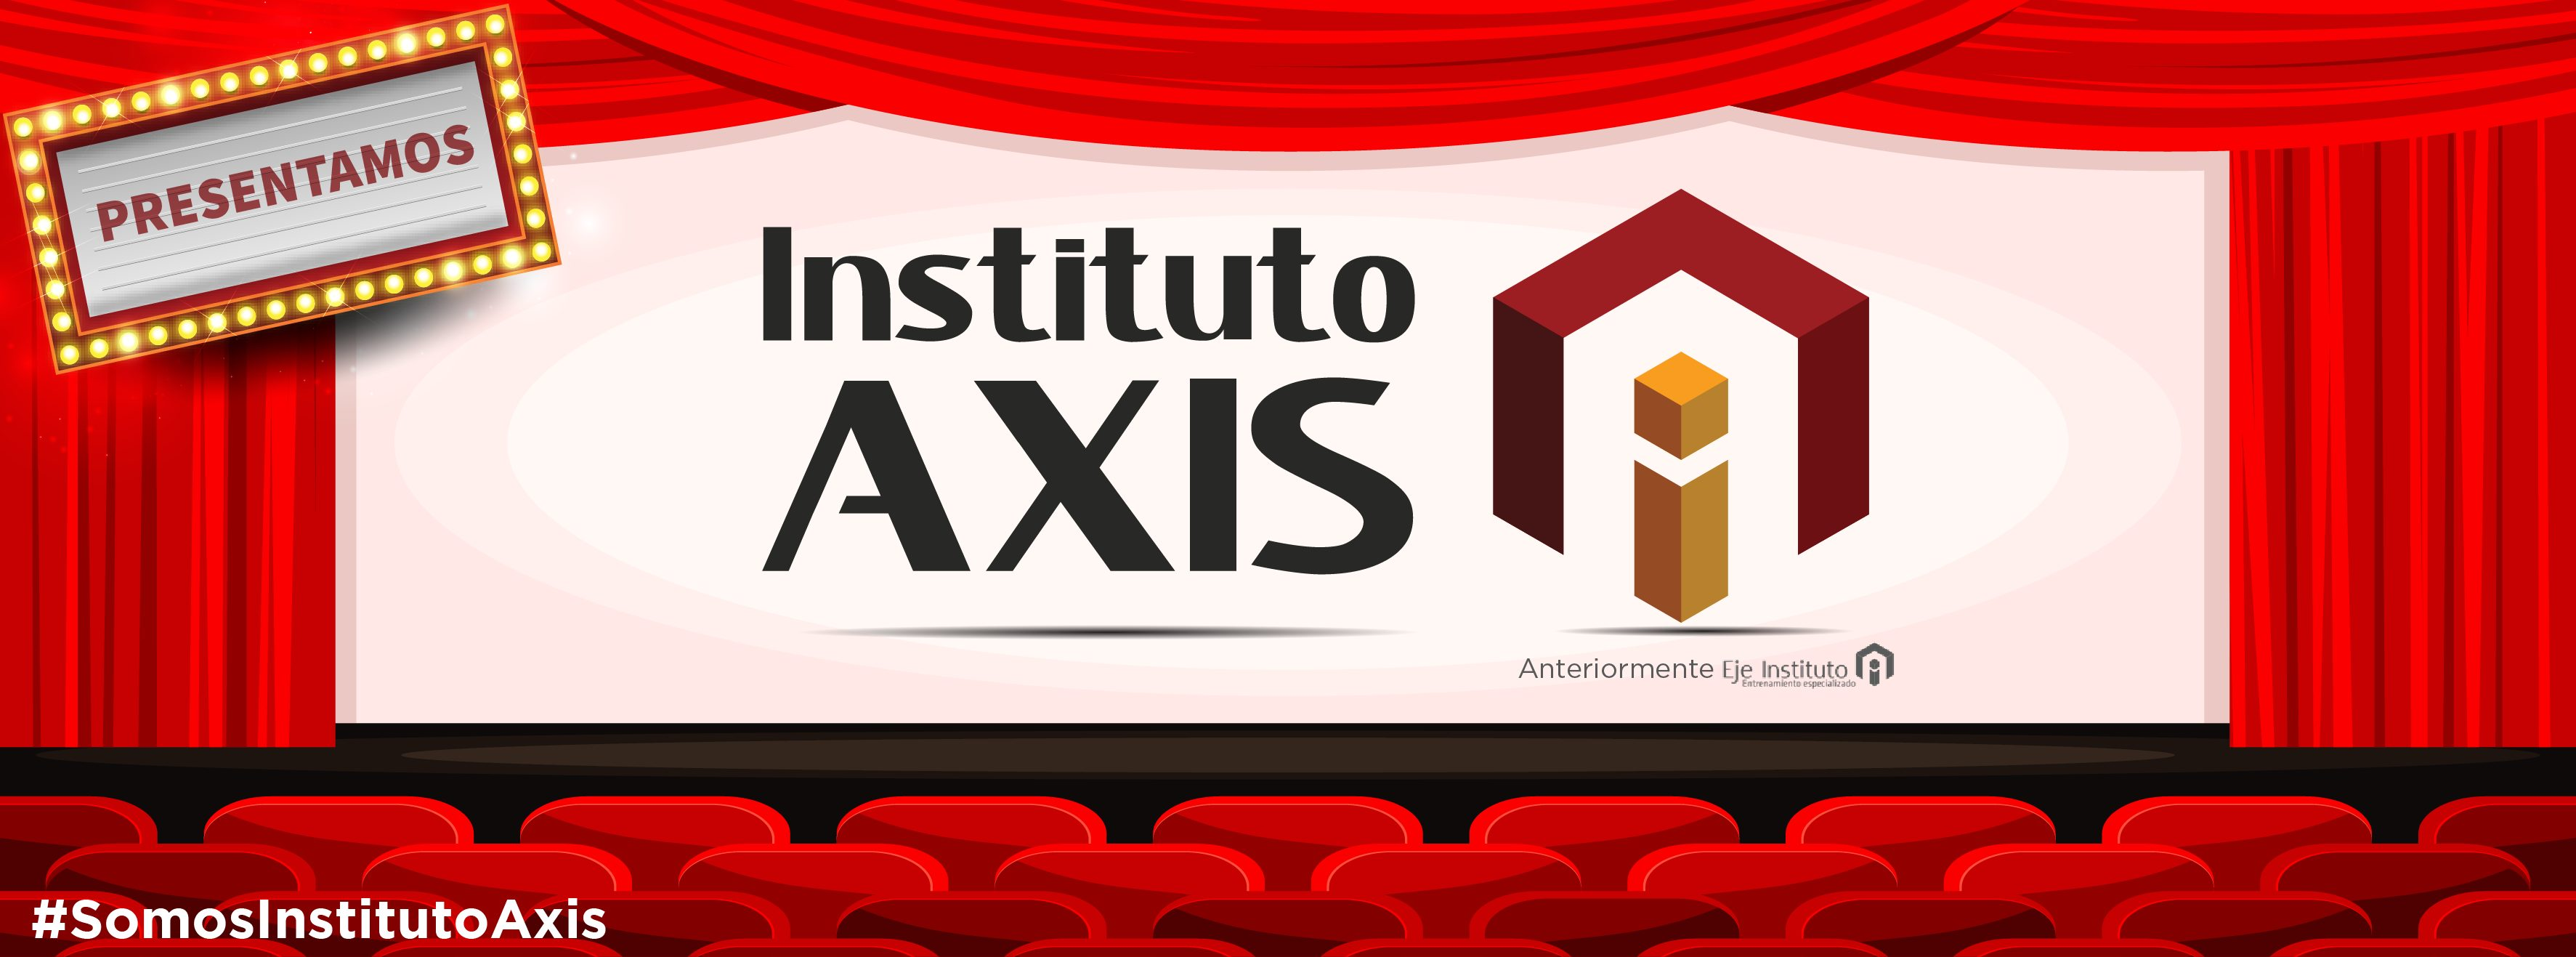 www.institutoaxis.mx